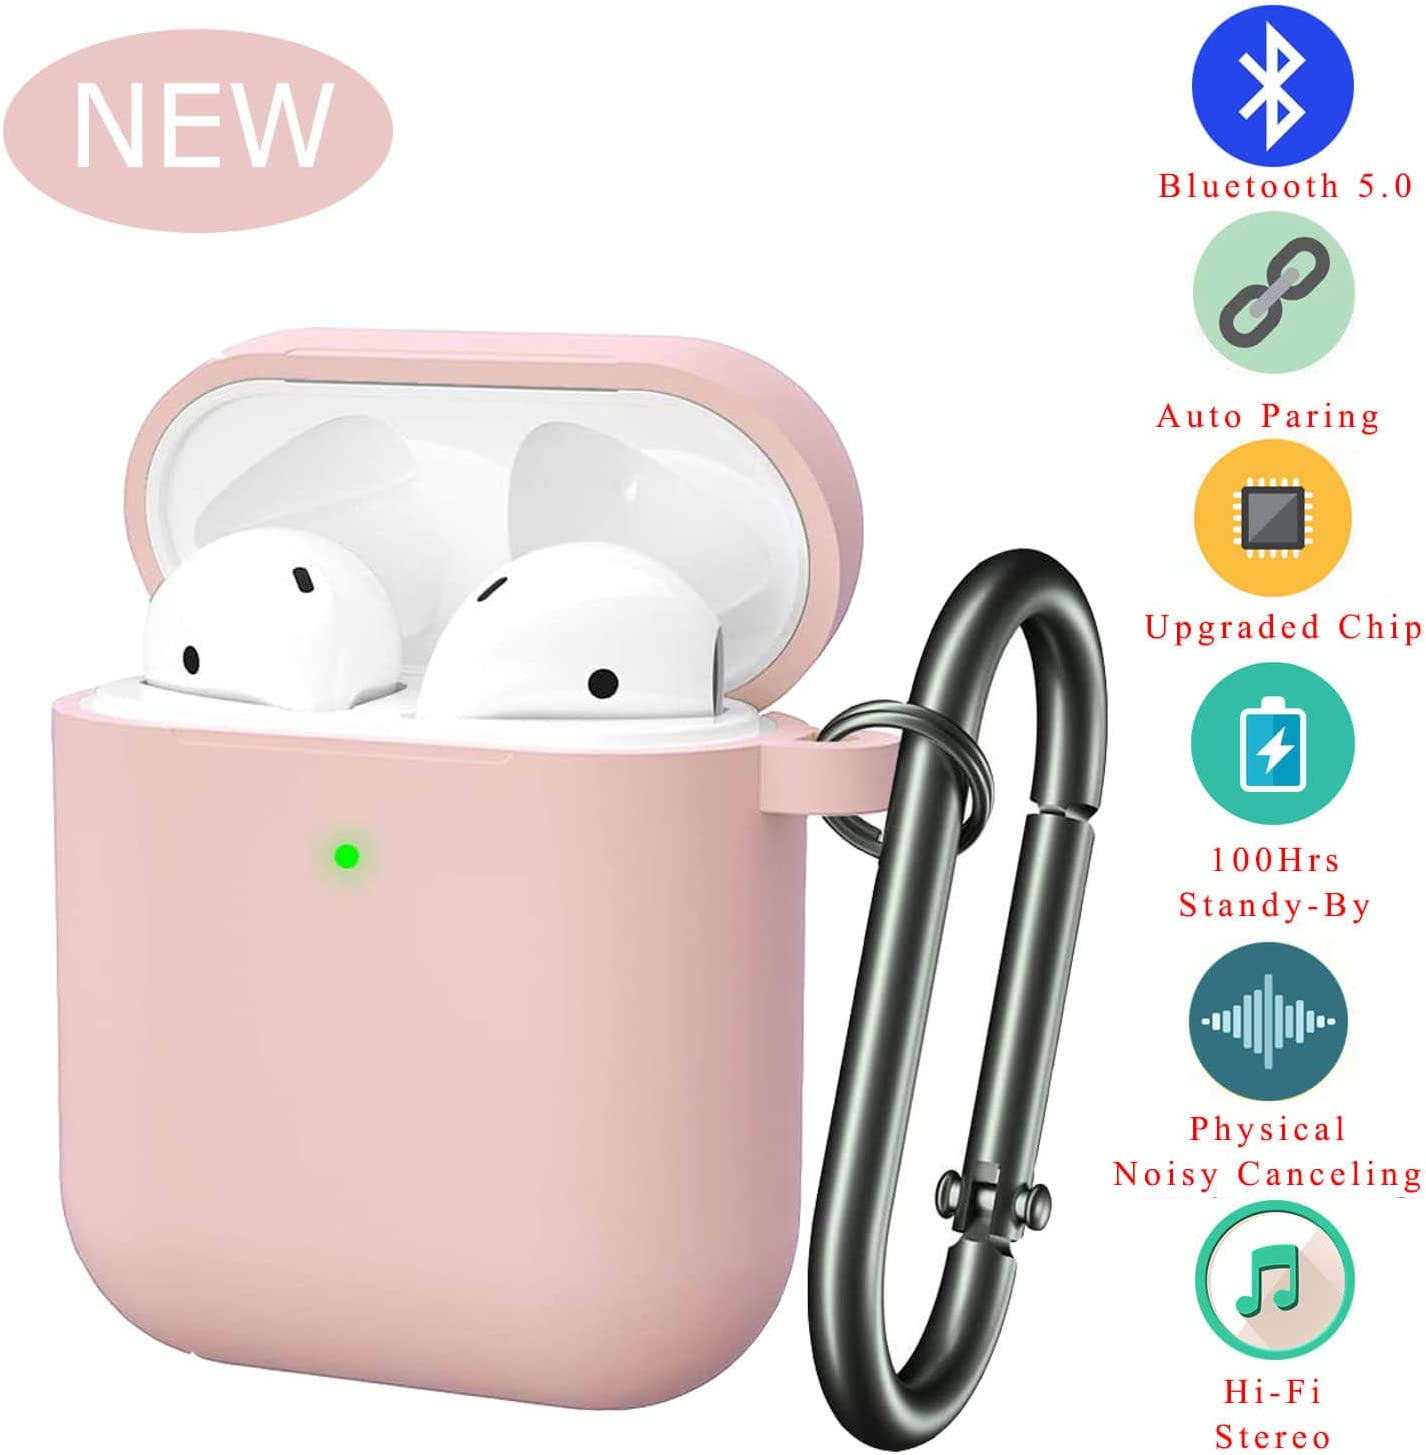 Bluetooth Wireless Noise Cancelling Headset | in-Ear Waterproof Headphones | with Portable Travel Silicone Charging case Hi-Fi Stereo Microphone Wireless Earbuds for iPhone/Android (Pink)